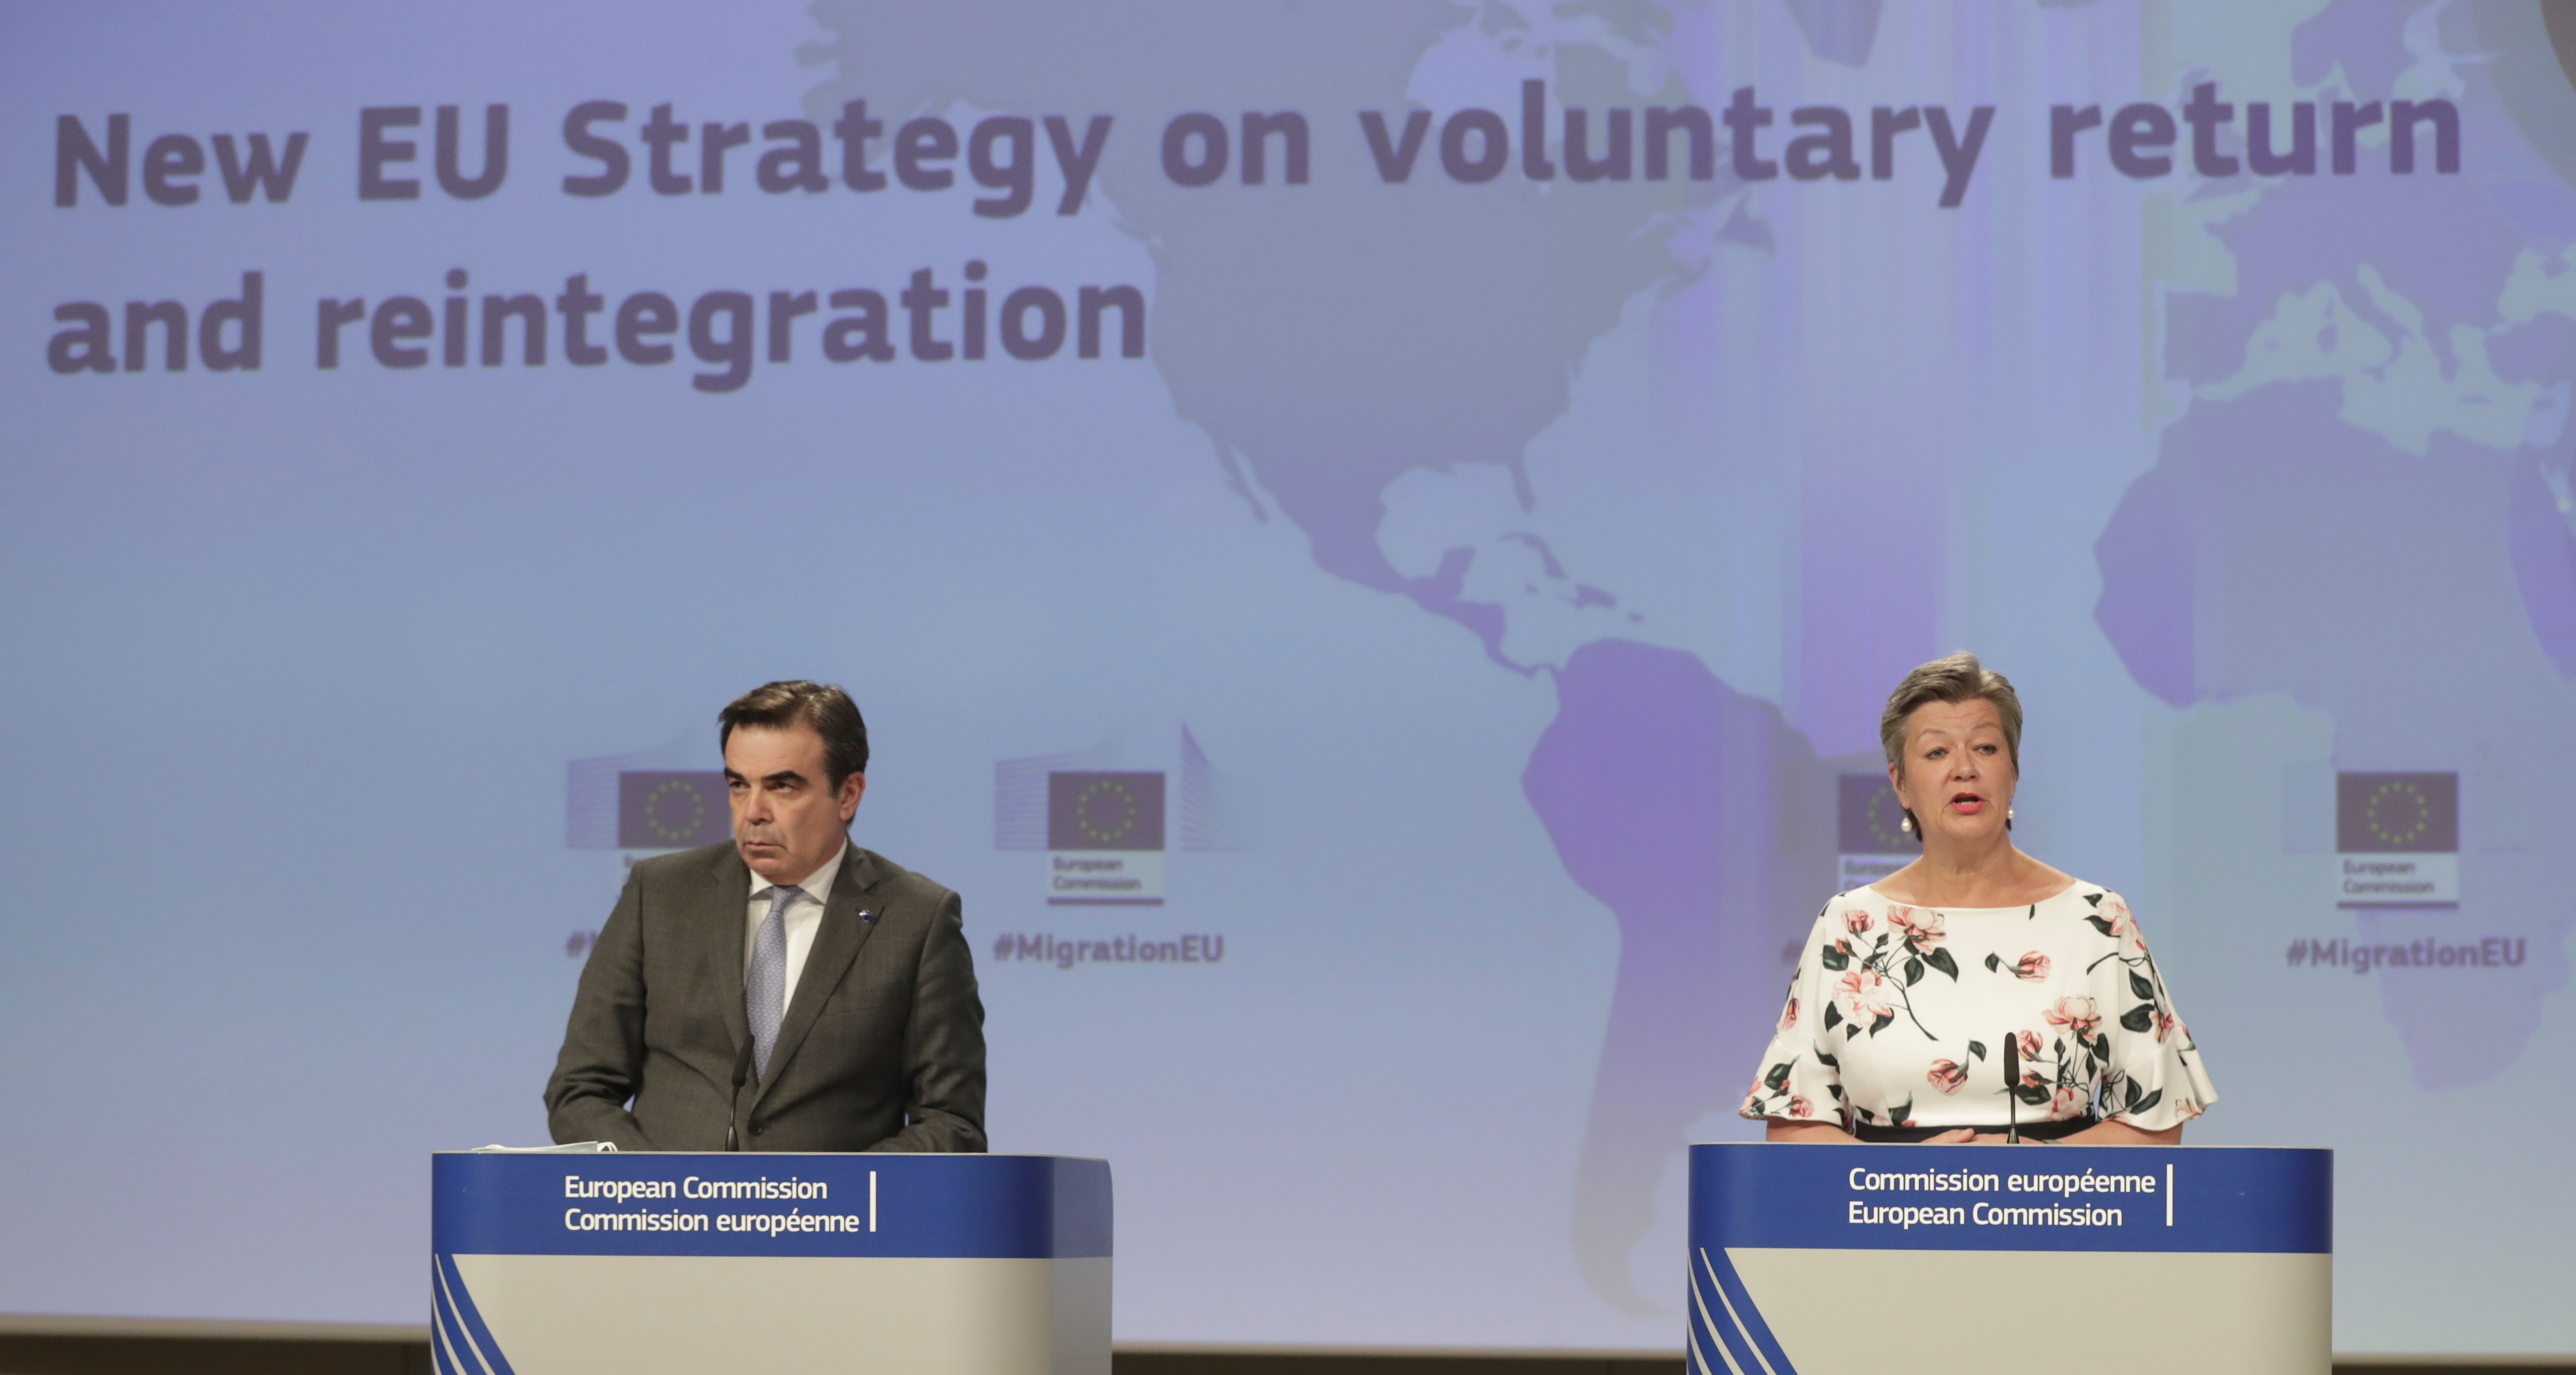 European Commission Vice-President for Promoting the European Way of Life, Margaritis Schinas, and European Commissioner for Home Affairs, Ylva Johansson attend a press conference on EU Strategy on sustainable return and reintegration of illegal migrants in Europe, in Brussels, Belgium, April 27, 2021. Stephanie Lecocq/Pool via REUTERS